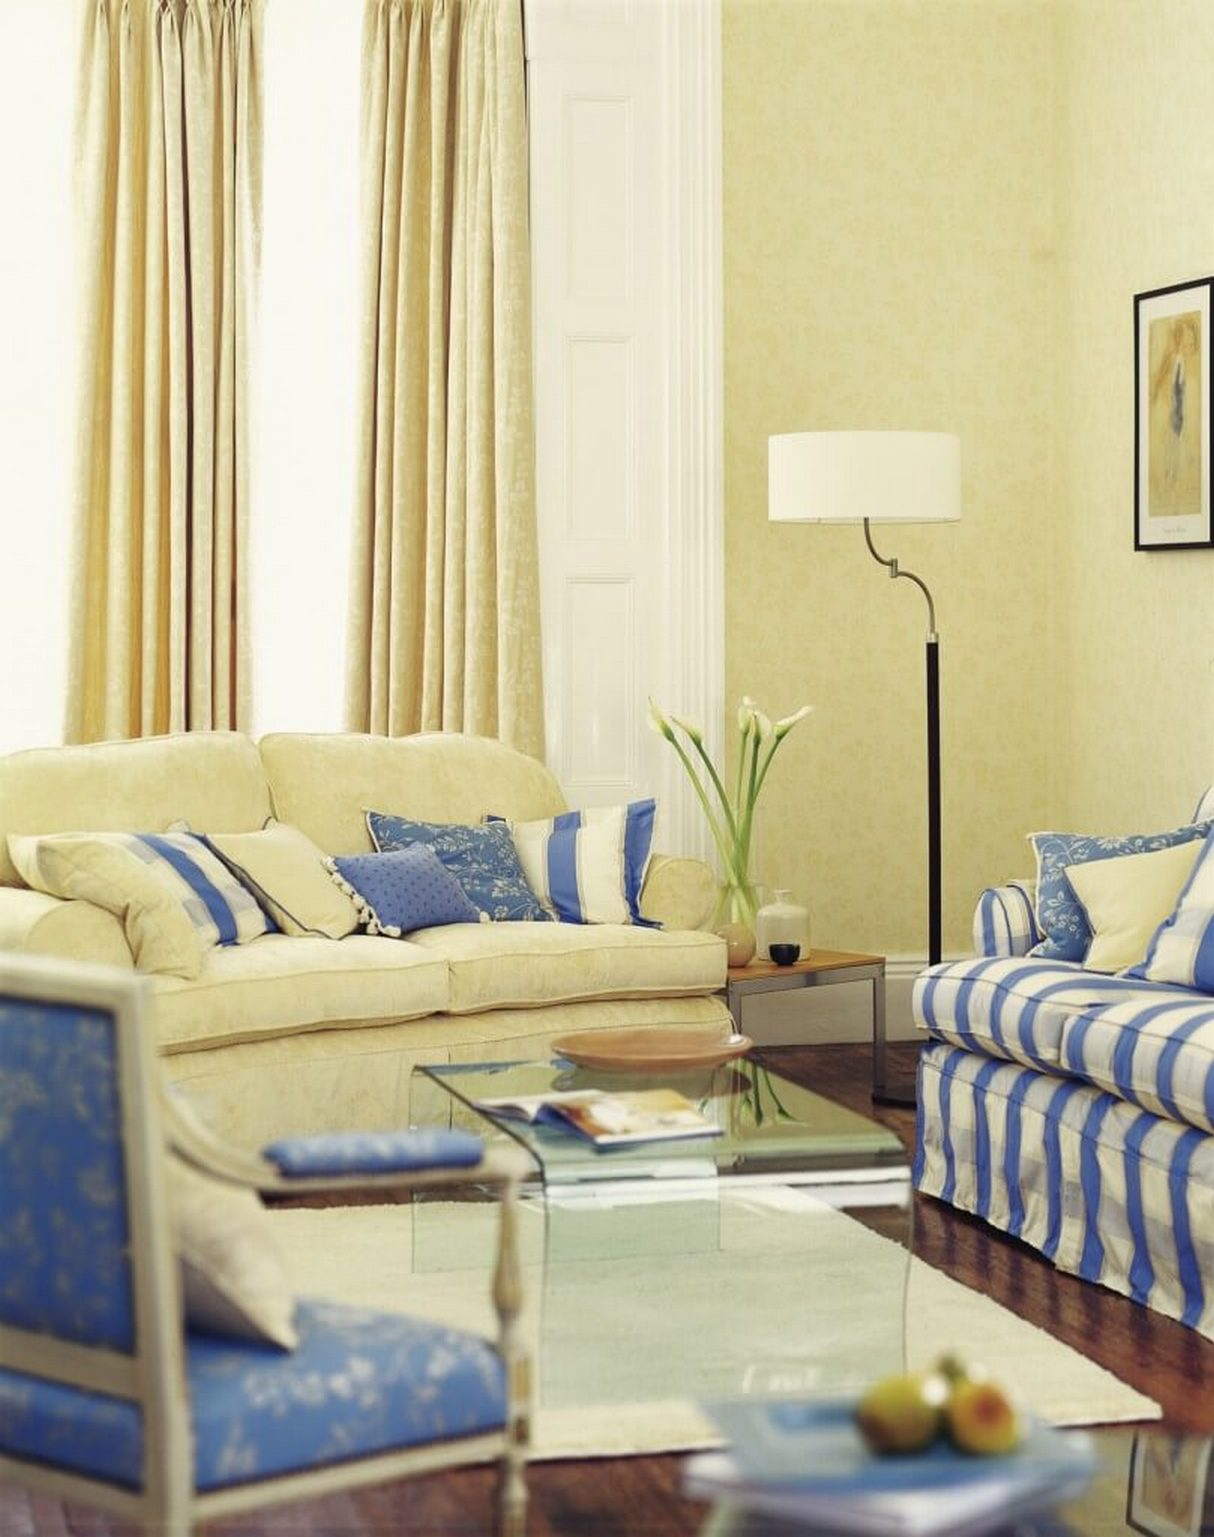 A pale butter yellow and cornflower blue living room with rich hardwood flooring and a subtle for Yellow and blue living room ideas